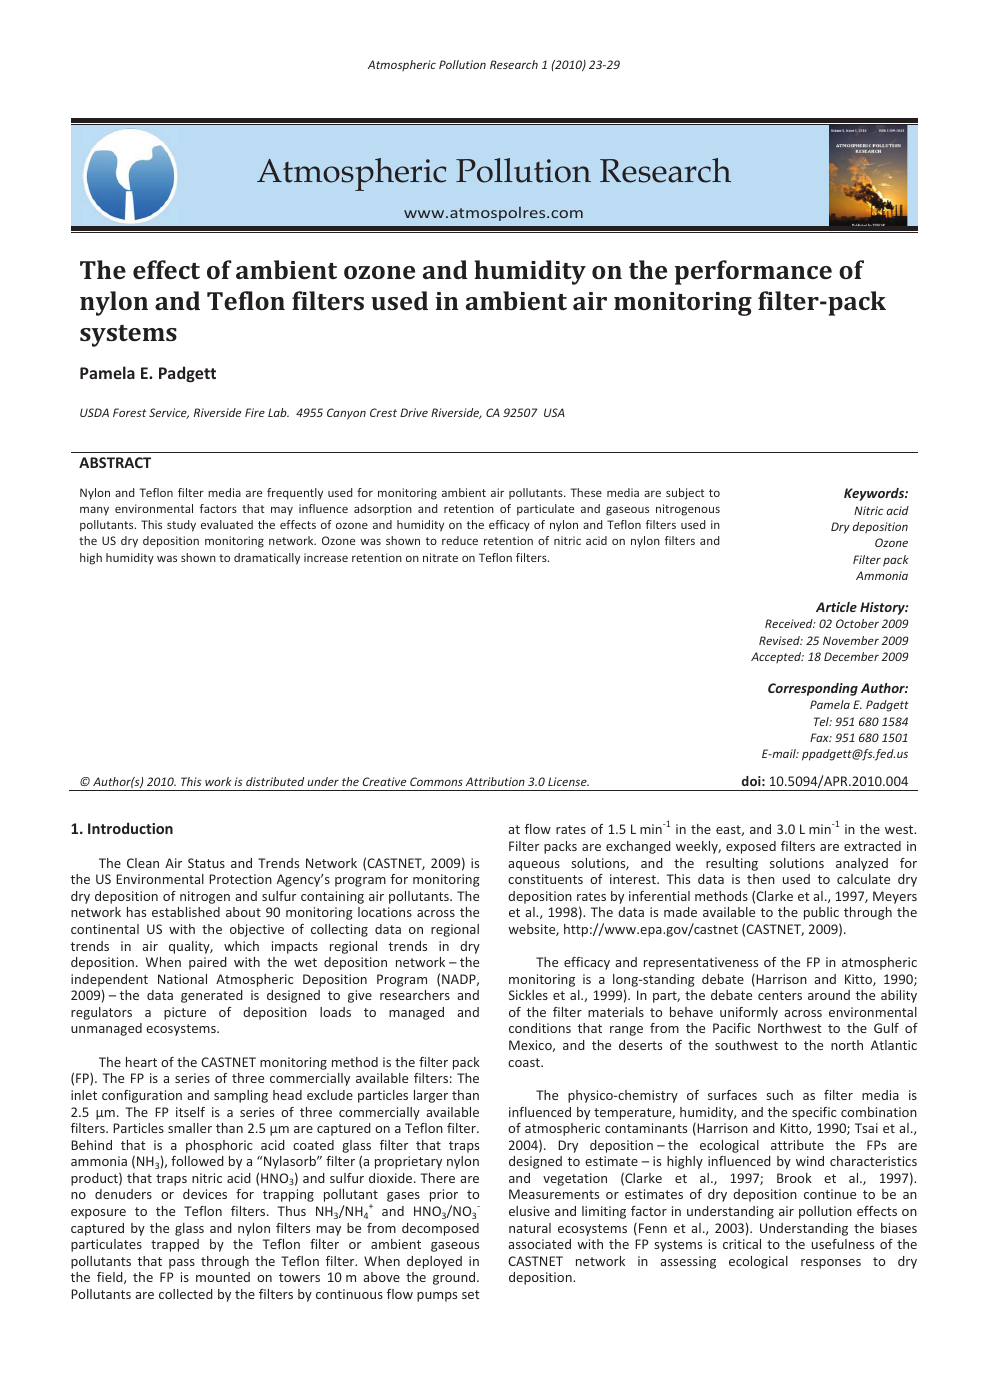 The effect of ambient ozone and humidity on the performance